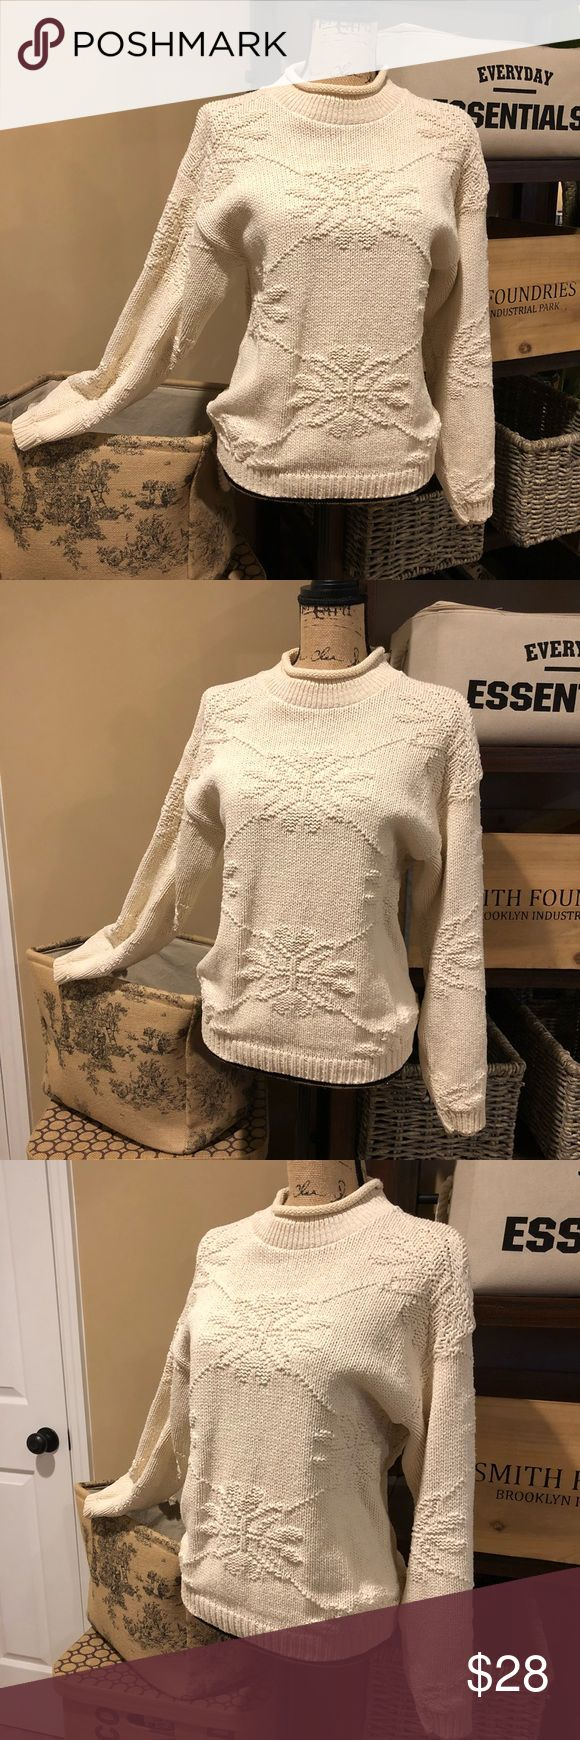 AMANA  Gorgeous Cable Knit Sweater Sz M 🎄AMANA  Gorgeous Cable Knit Sweater 💯 Cotton soft, cozy and comfy.   This is so warm and comfortable  preloved in excellent condition. Size: Medium  Arm pit to arm pit 20 inches  Shoulder length down to the bottom 23 inches Amana Sweaters Crew & Scoop Necks